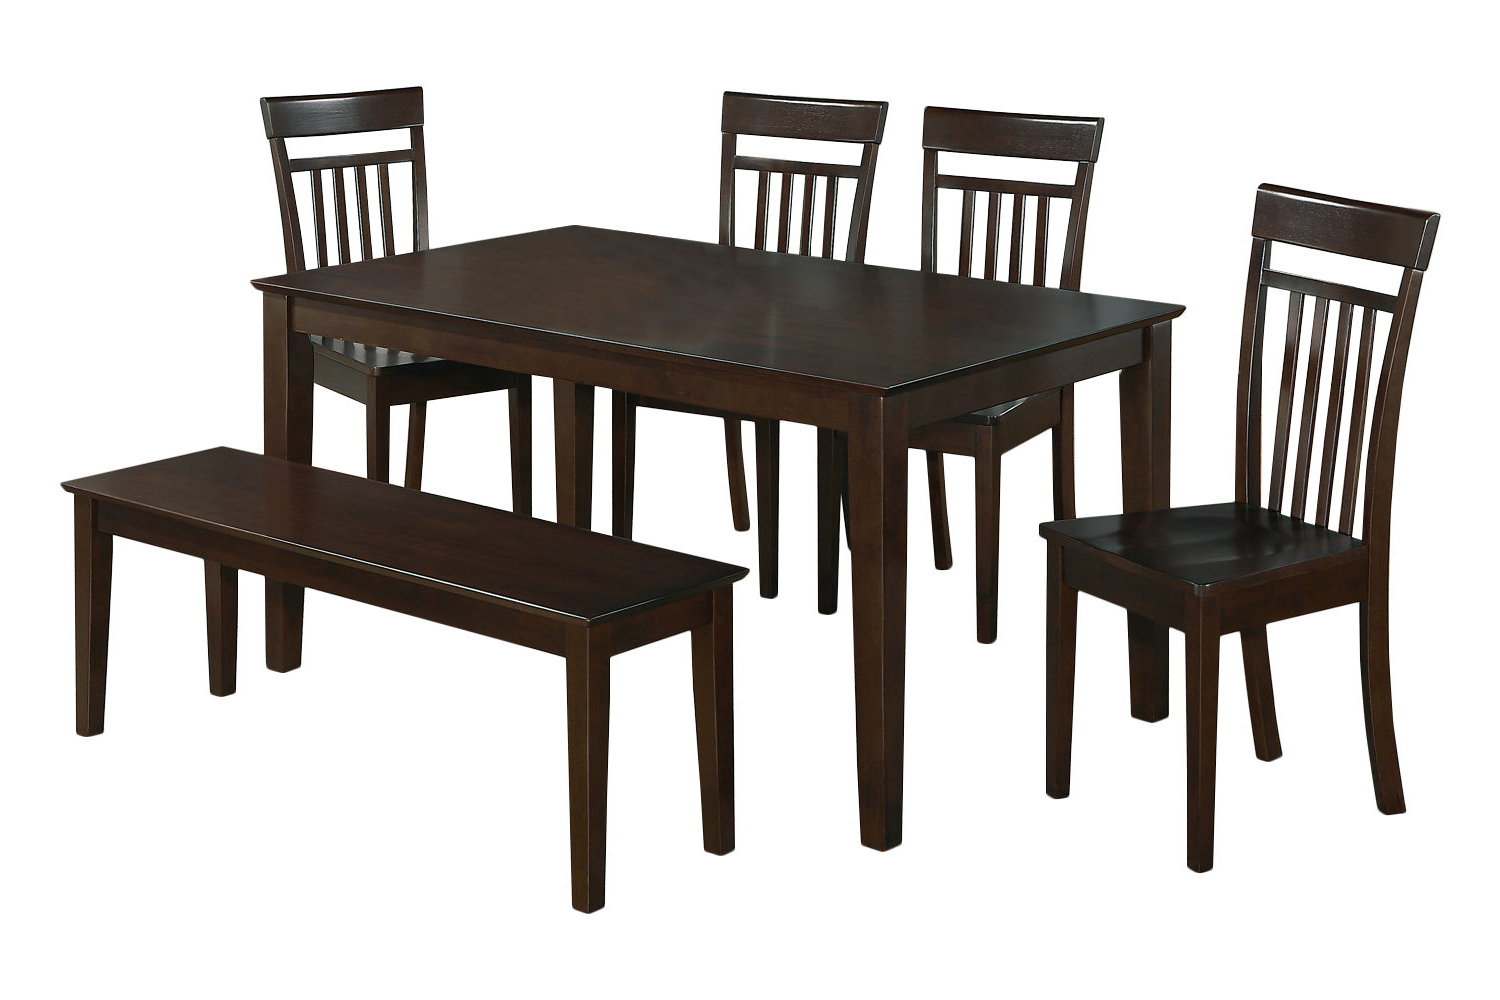 Smyrna 3 Piece Dining Sets Intended For 2017 Smyrna 6 Piece Dining Set (View 16 of 20)